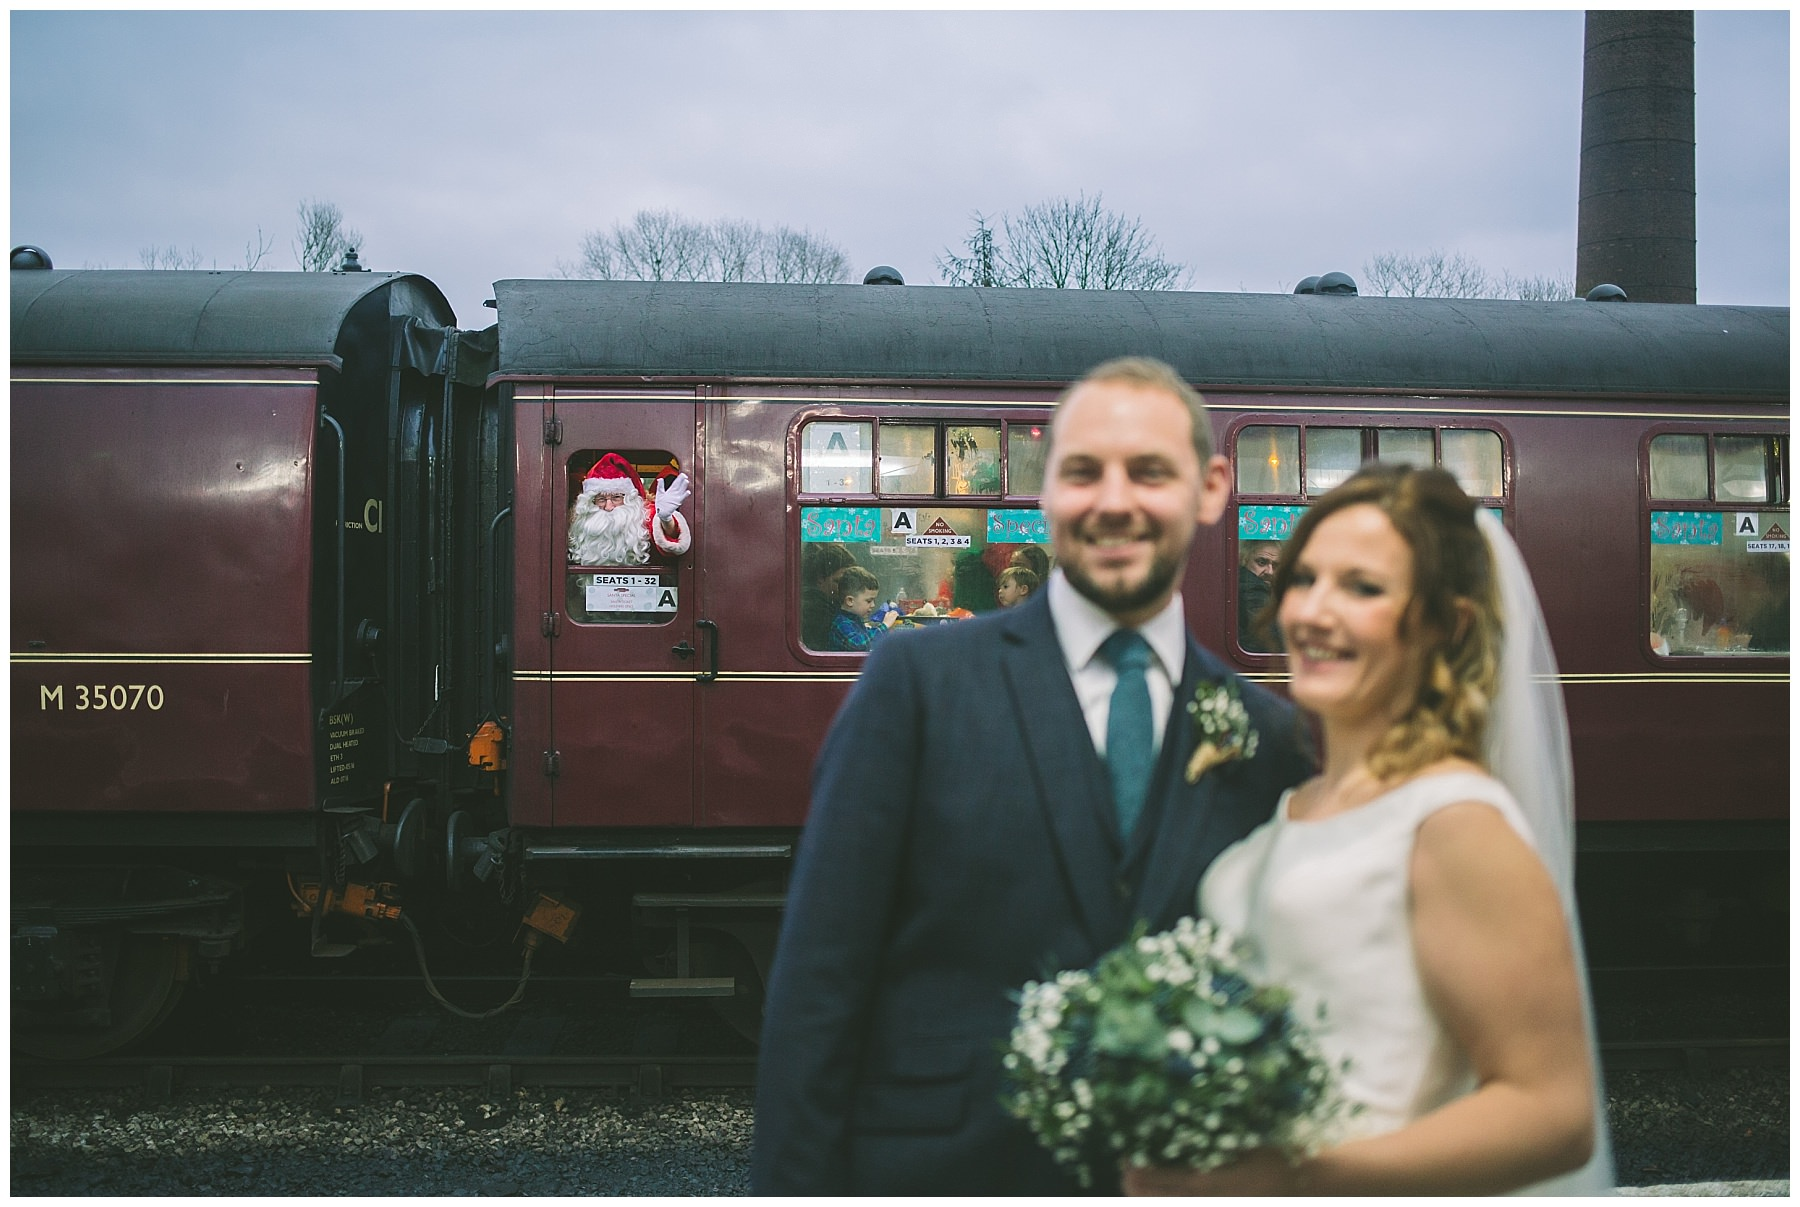 father Christmas photobombs newly married couple